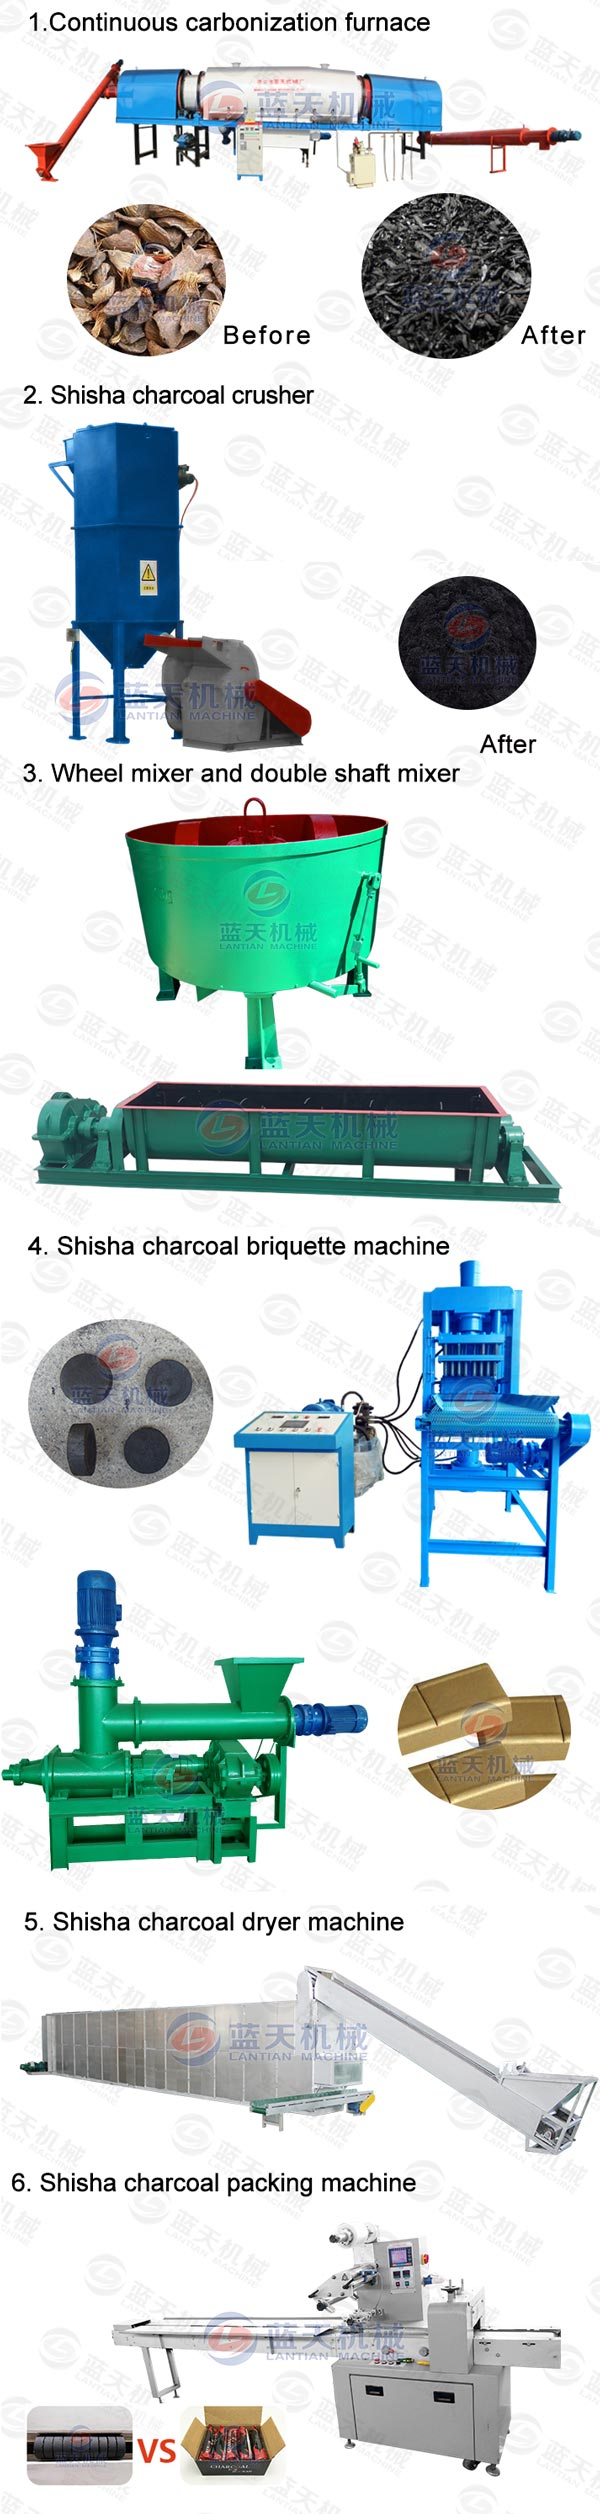 Product Line of Shisha Charcoal Dryer Machine